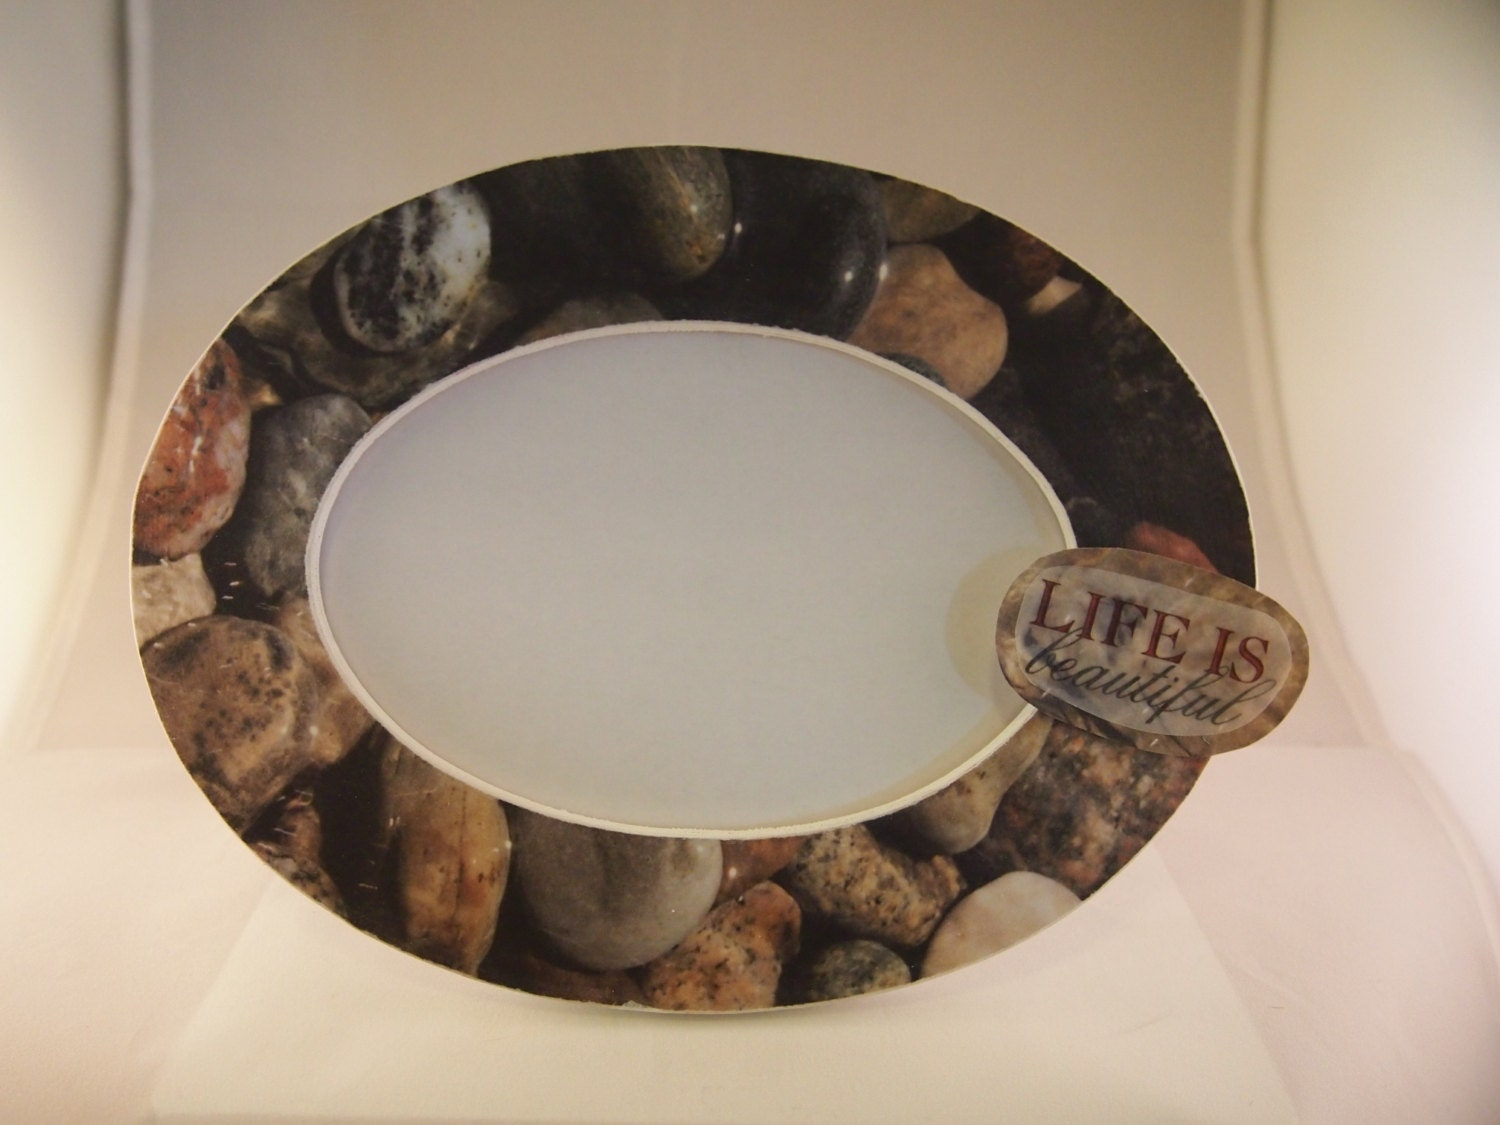 Stone Frame Life Is Beautiful Natural Decor Home Decor